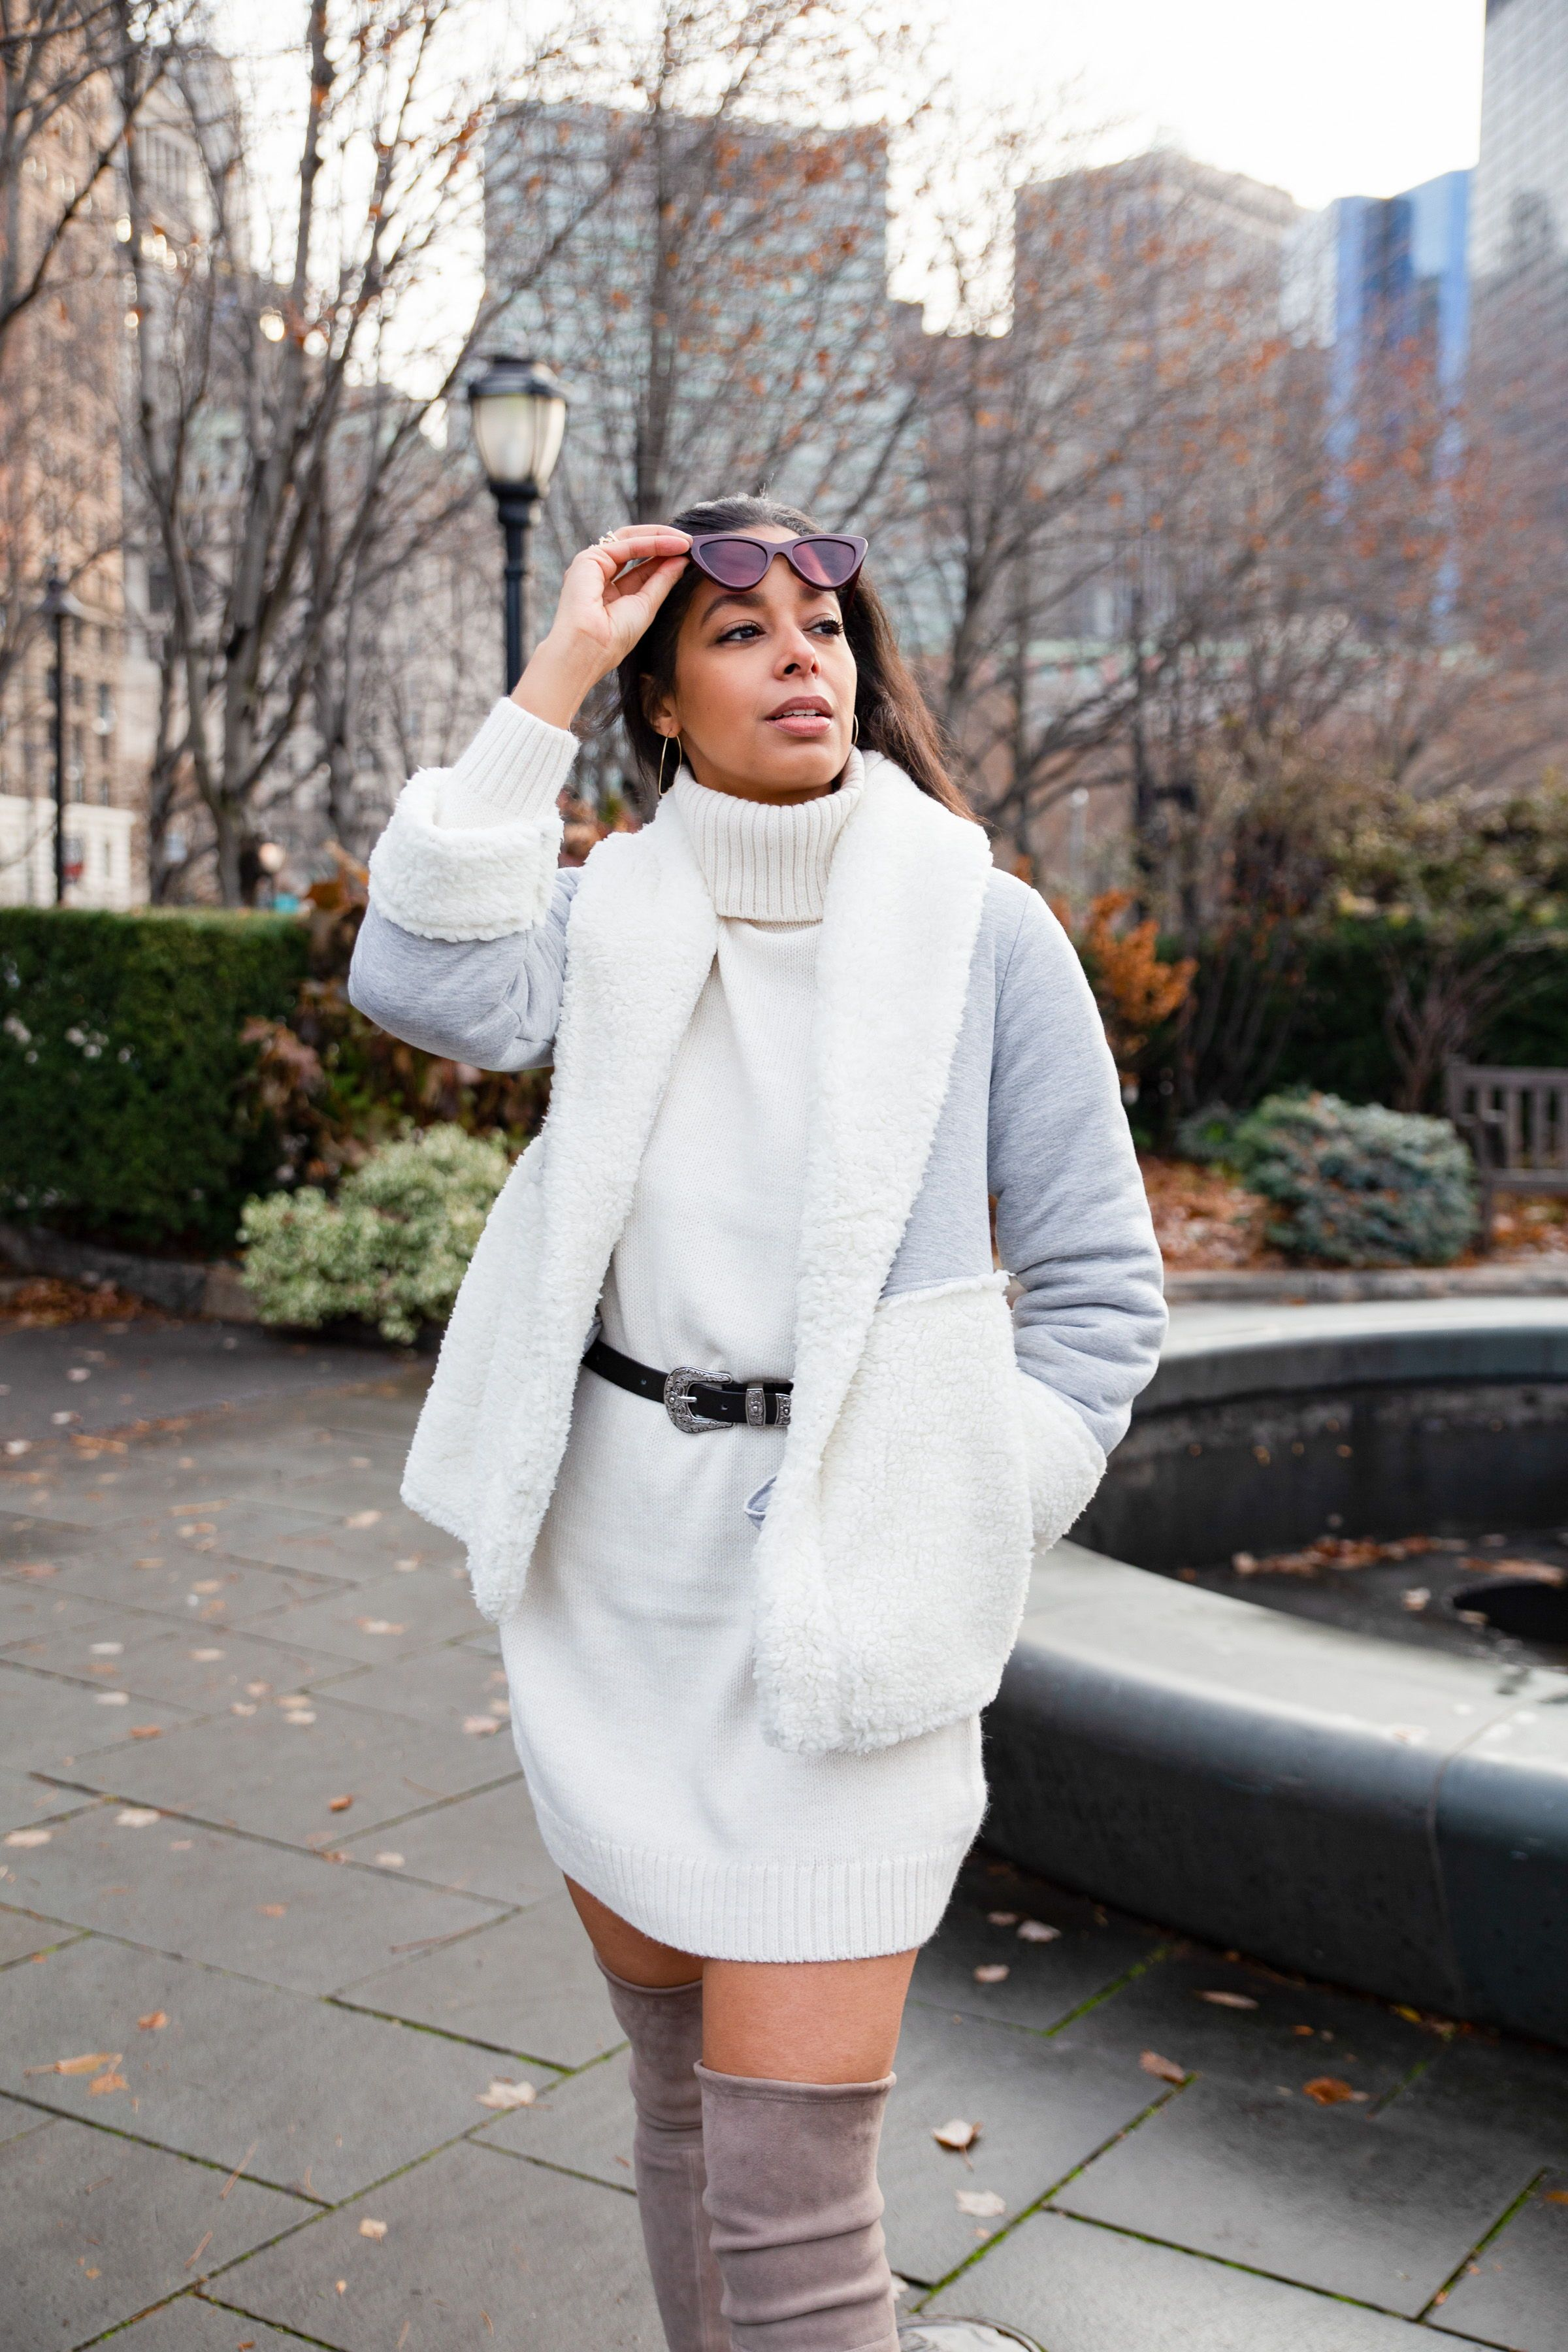 Winter style Winter city outfits NYC Fashion blogger photography 23c8c345a